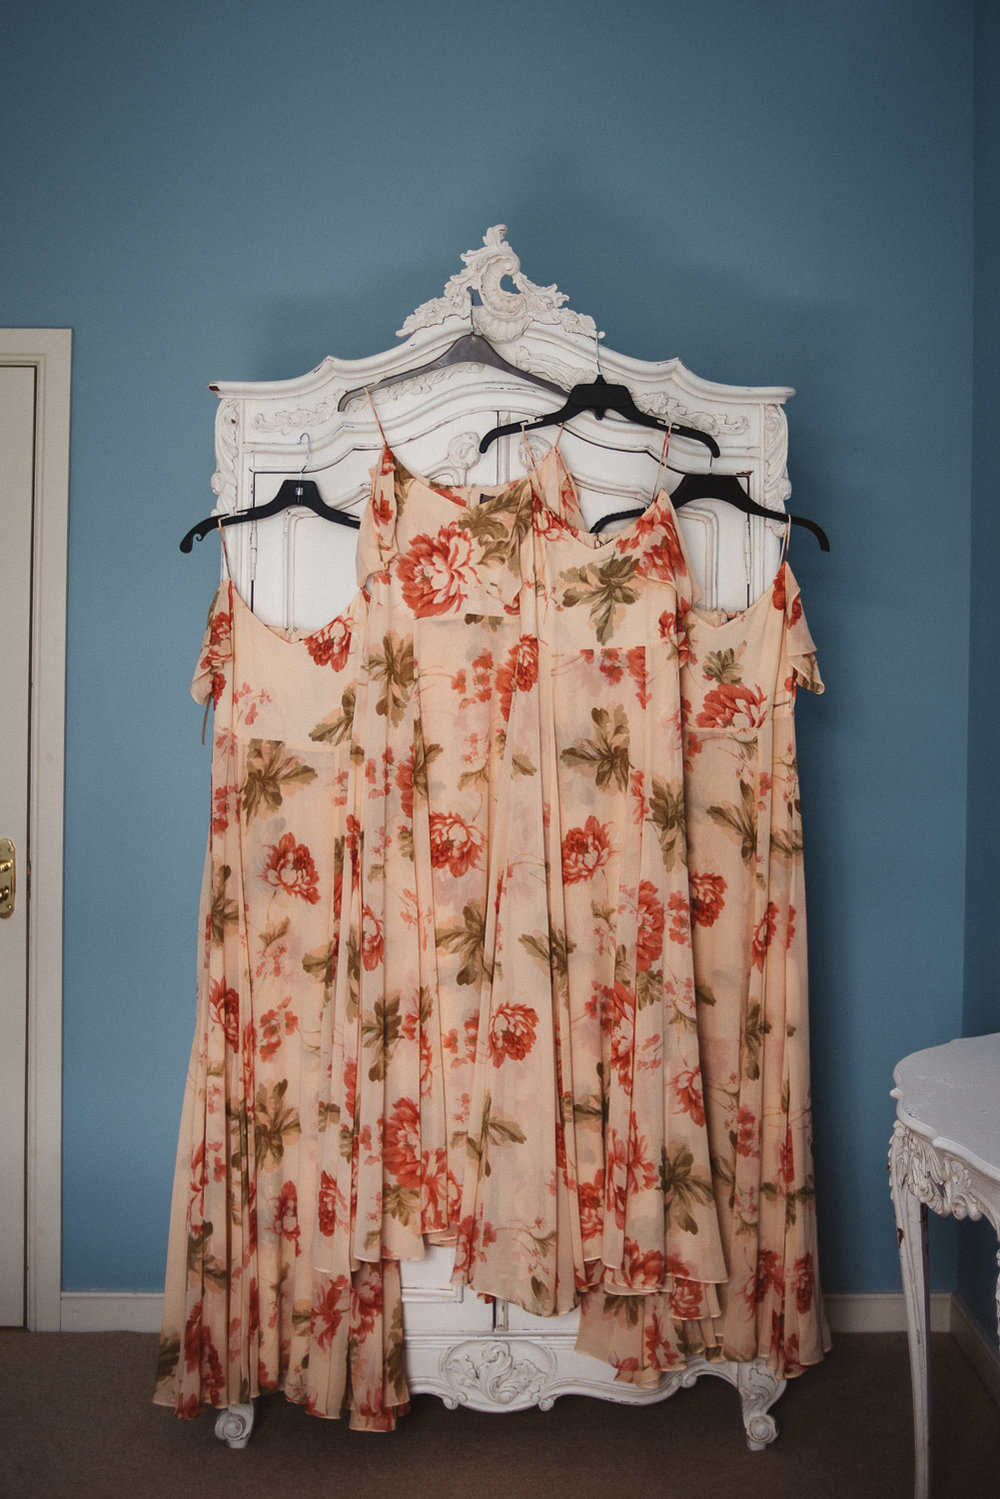 flower patterned bridesmaid dresses hanging on wardrobe